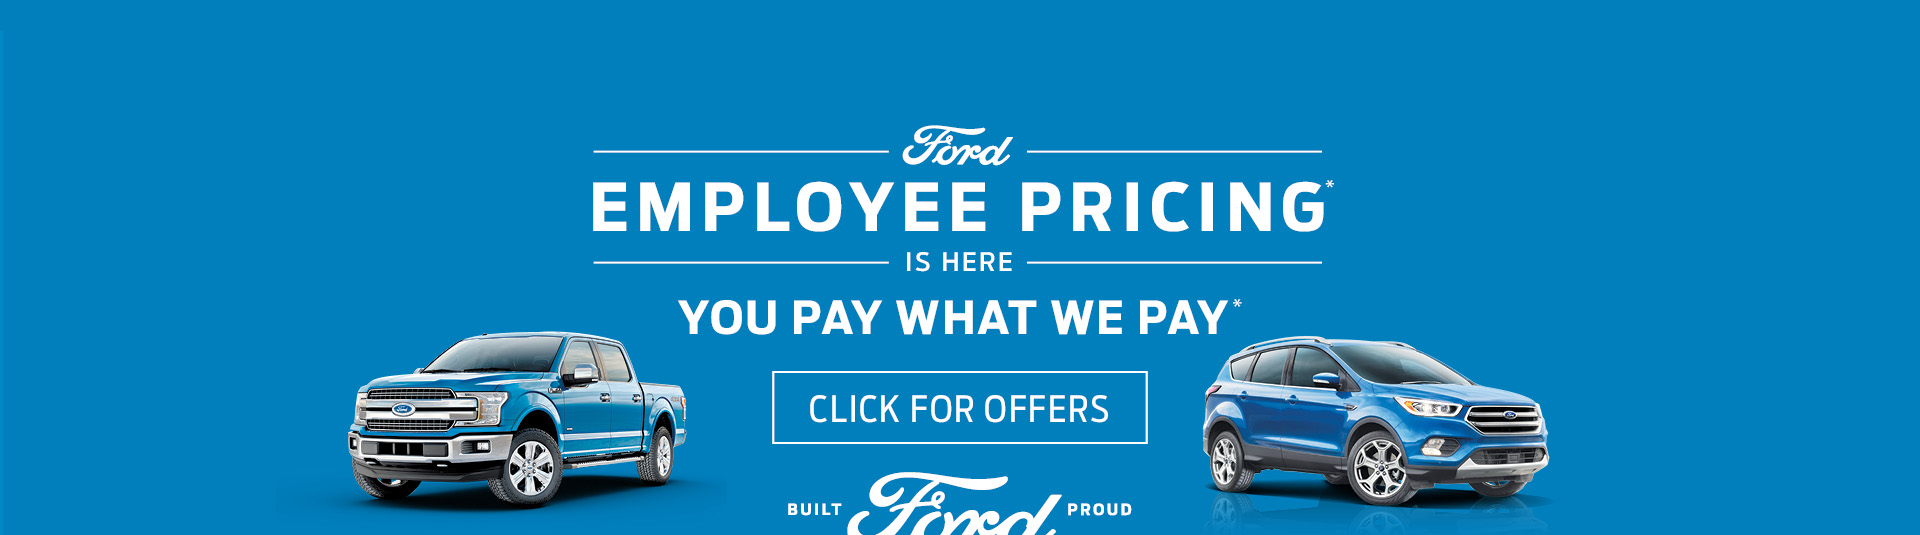 DowntownFord-Hero-Employee-Pricing-July-2019.jpg